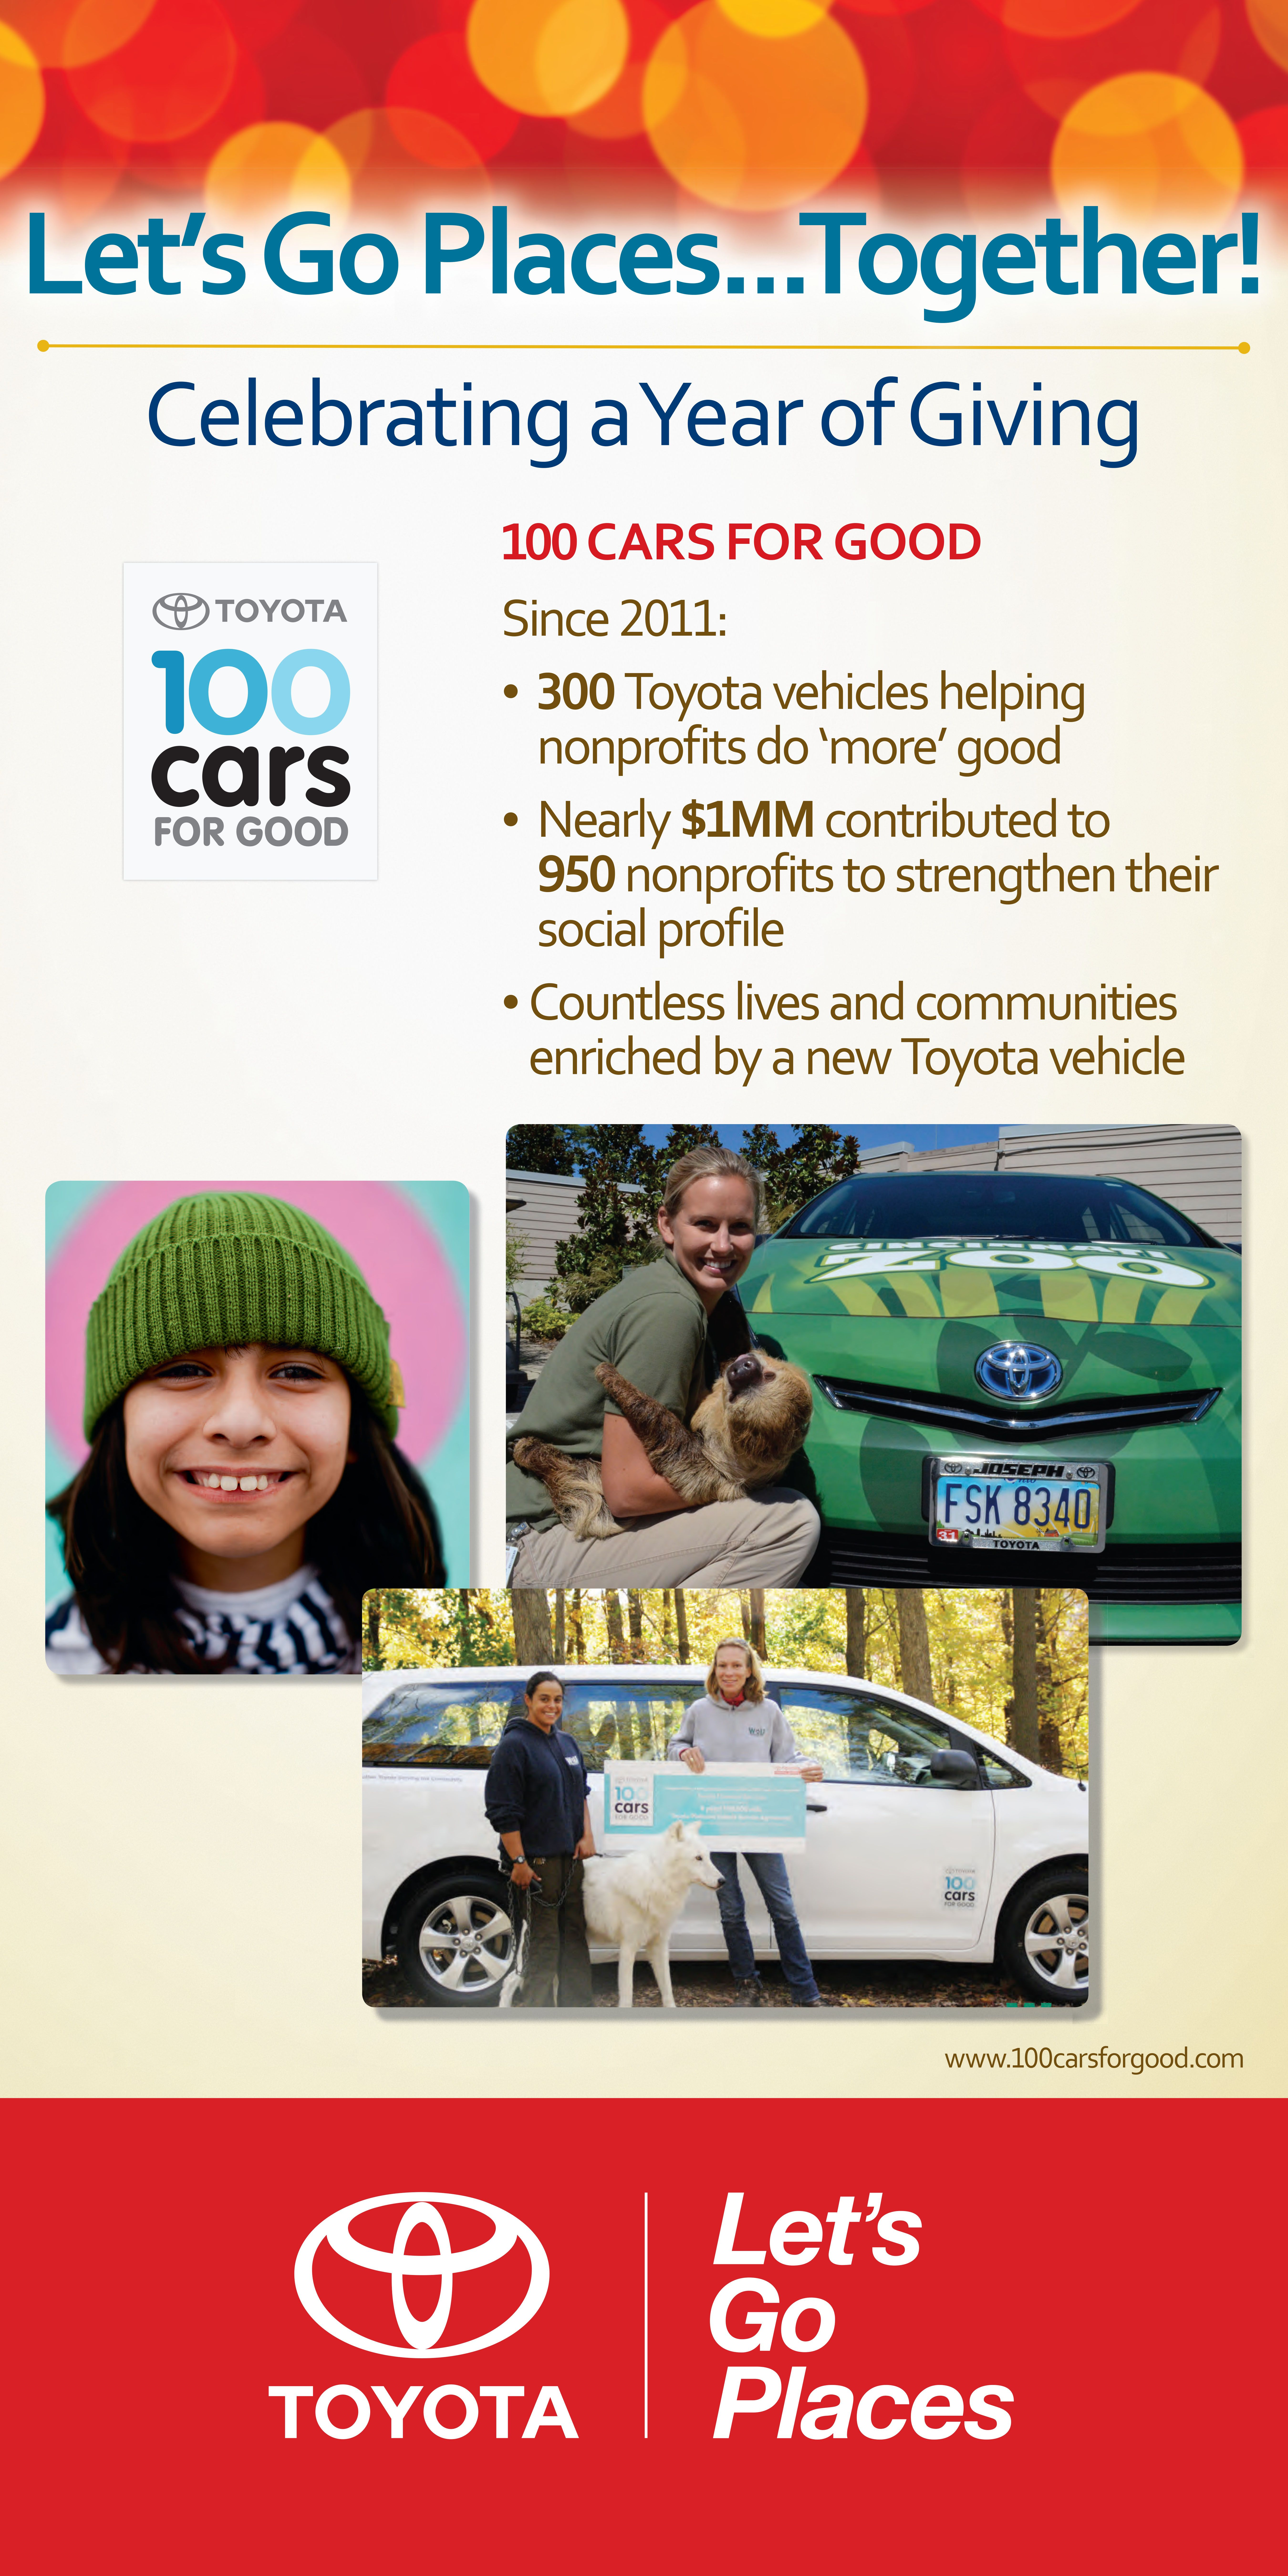 To Learn More About 100 Cars For Good, Visit Www.100carsforgood.com.